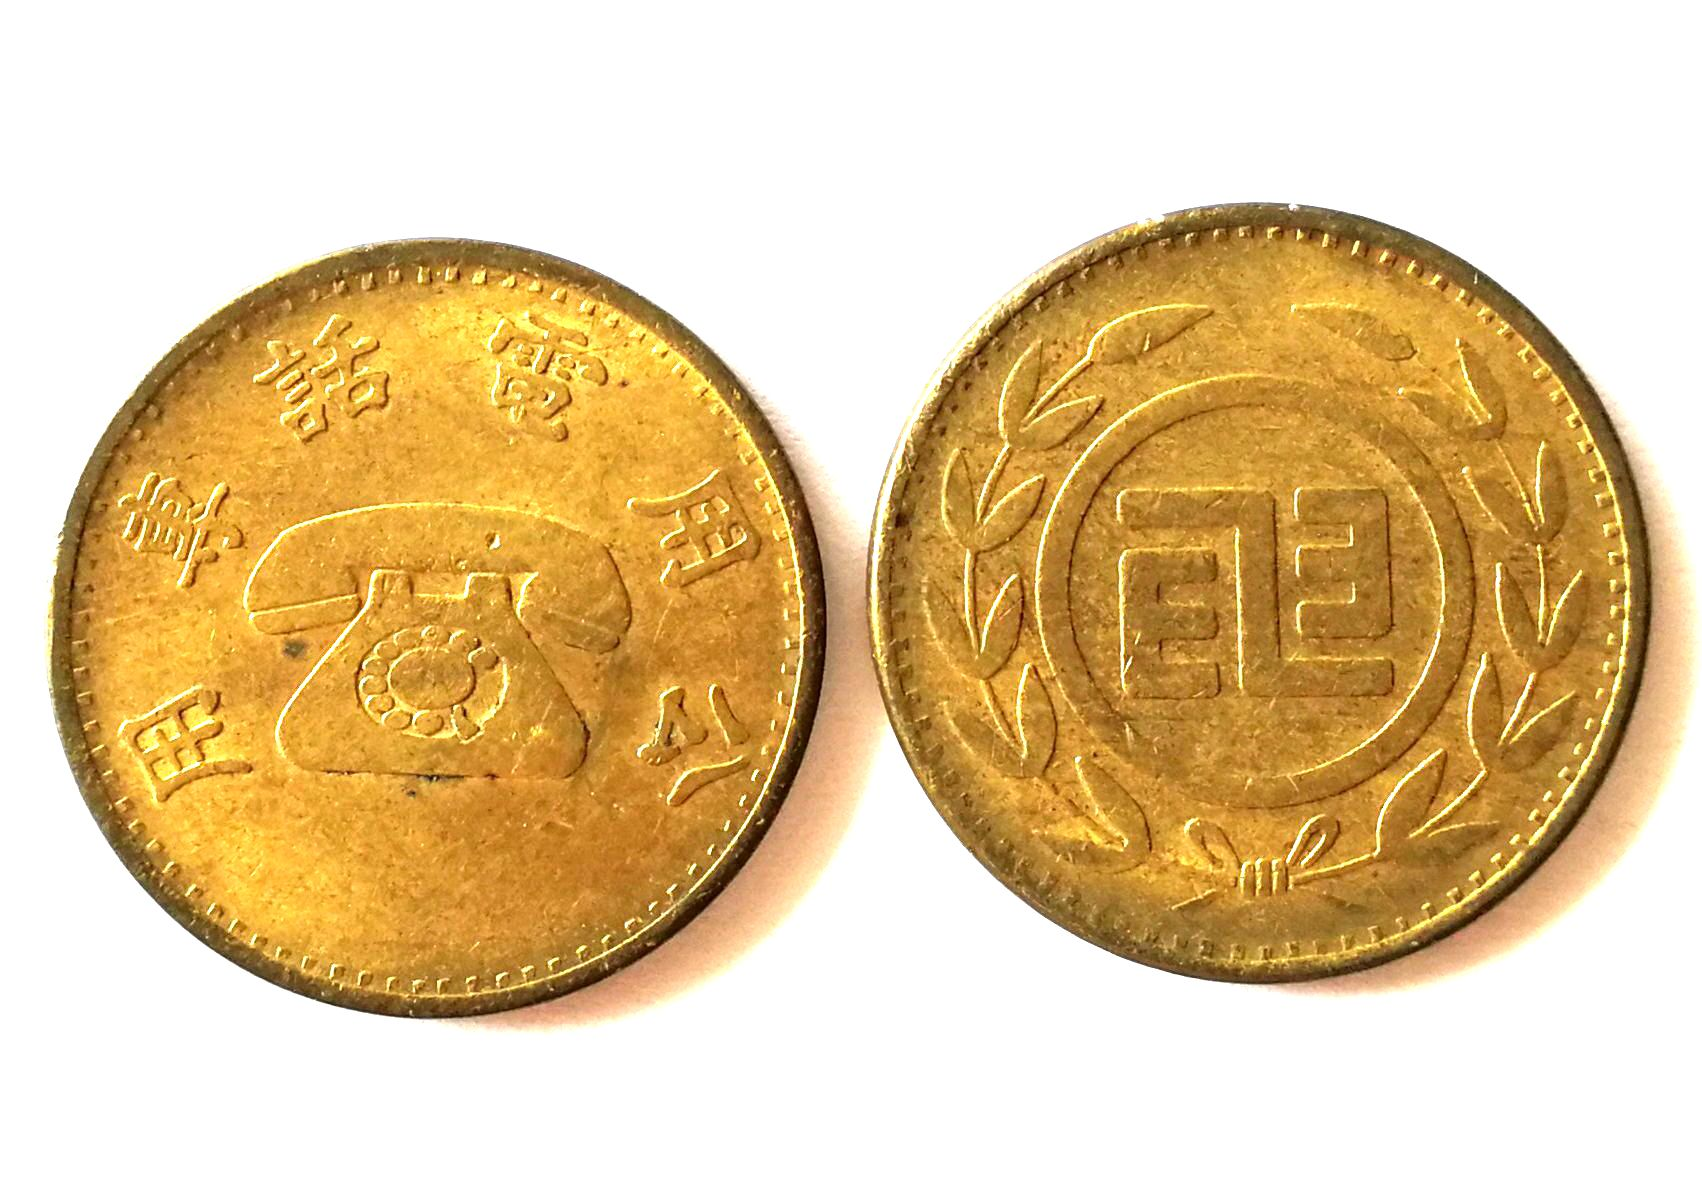 BT082, Taiwan Telephone Token, 1970's